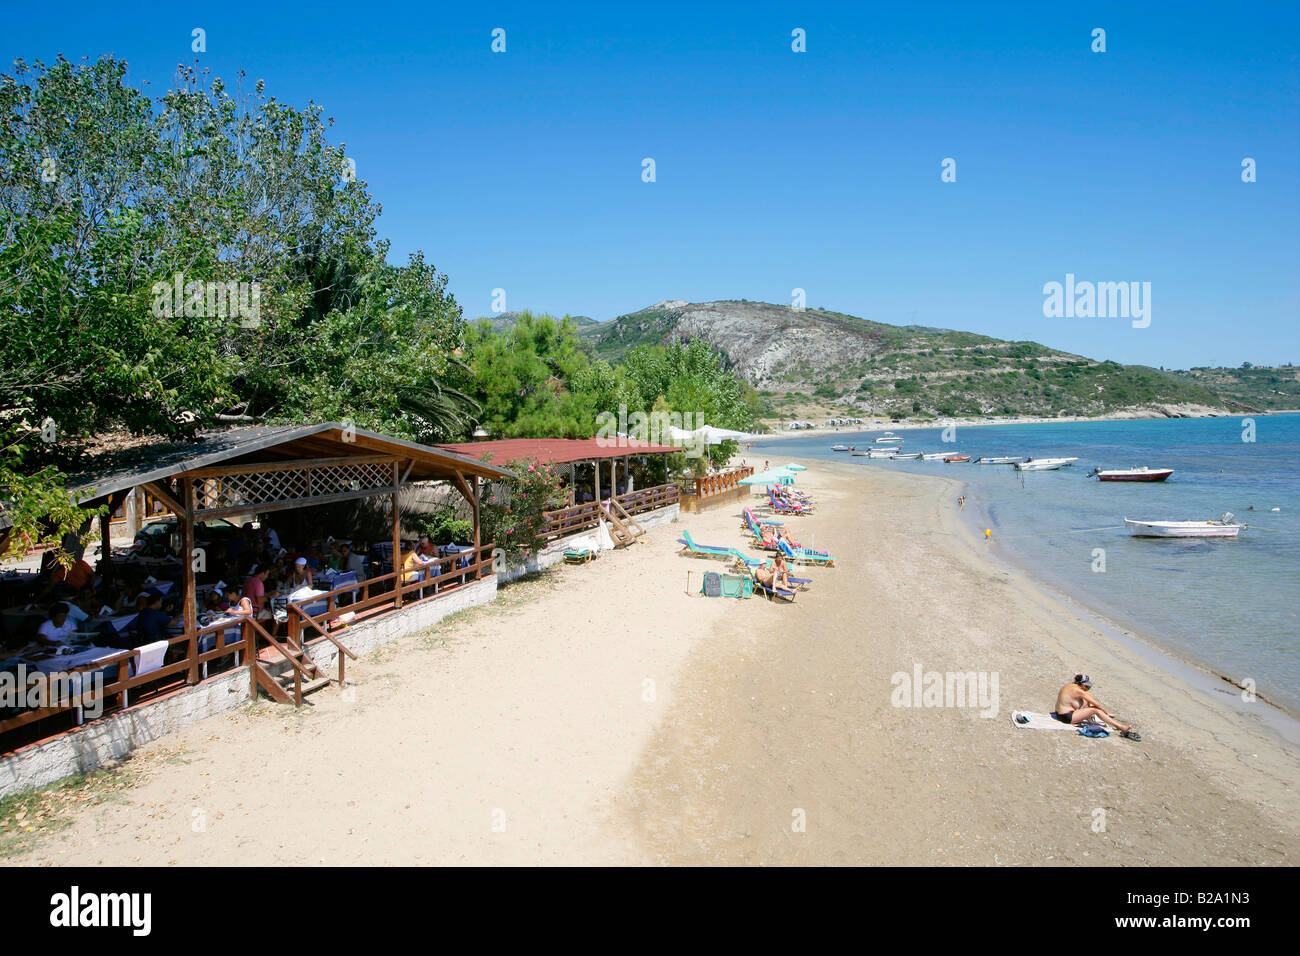 griechenland kefalonia strand von katelios s dk ste stockfoto bild 18660575 alamy. Black Bedroom Furniture Sets. Home Design Ideas